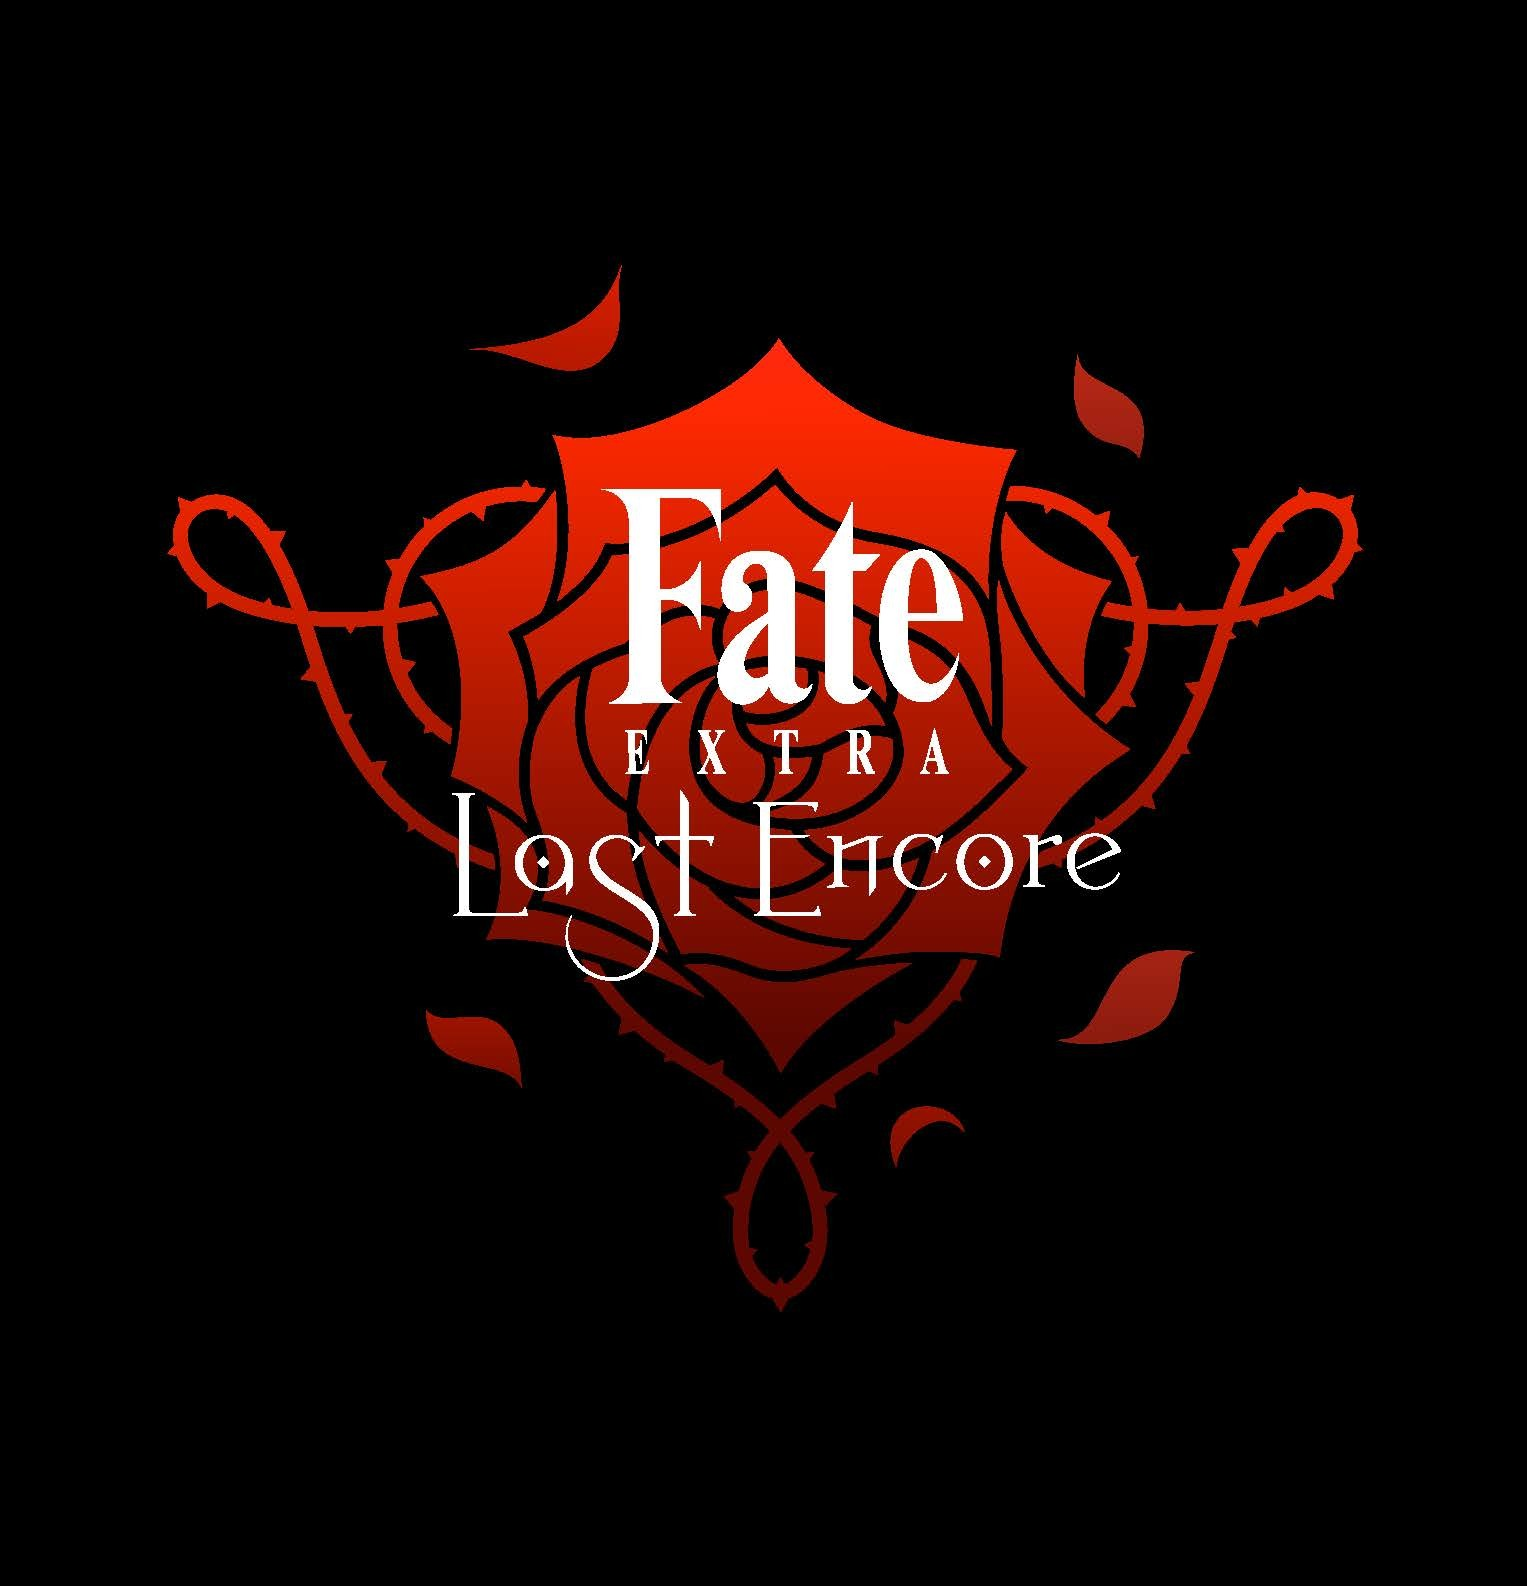 『Fate/EXTRA Last Encore』ロゴ (c)TYPE-MOON/Marvelous, Aniplex, Notes, SHAFT